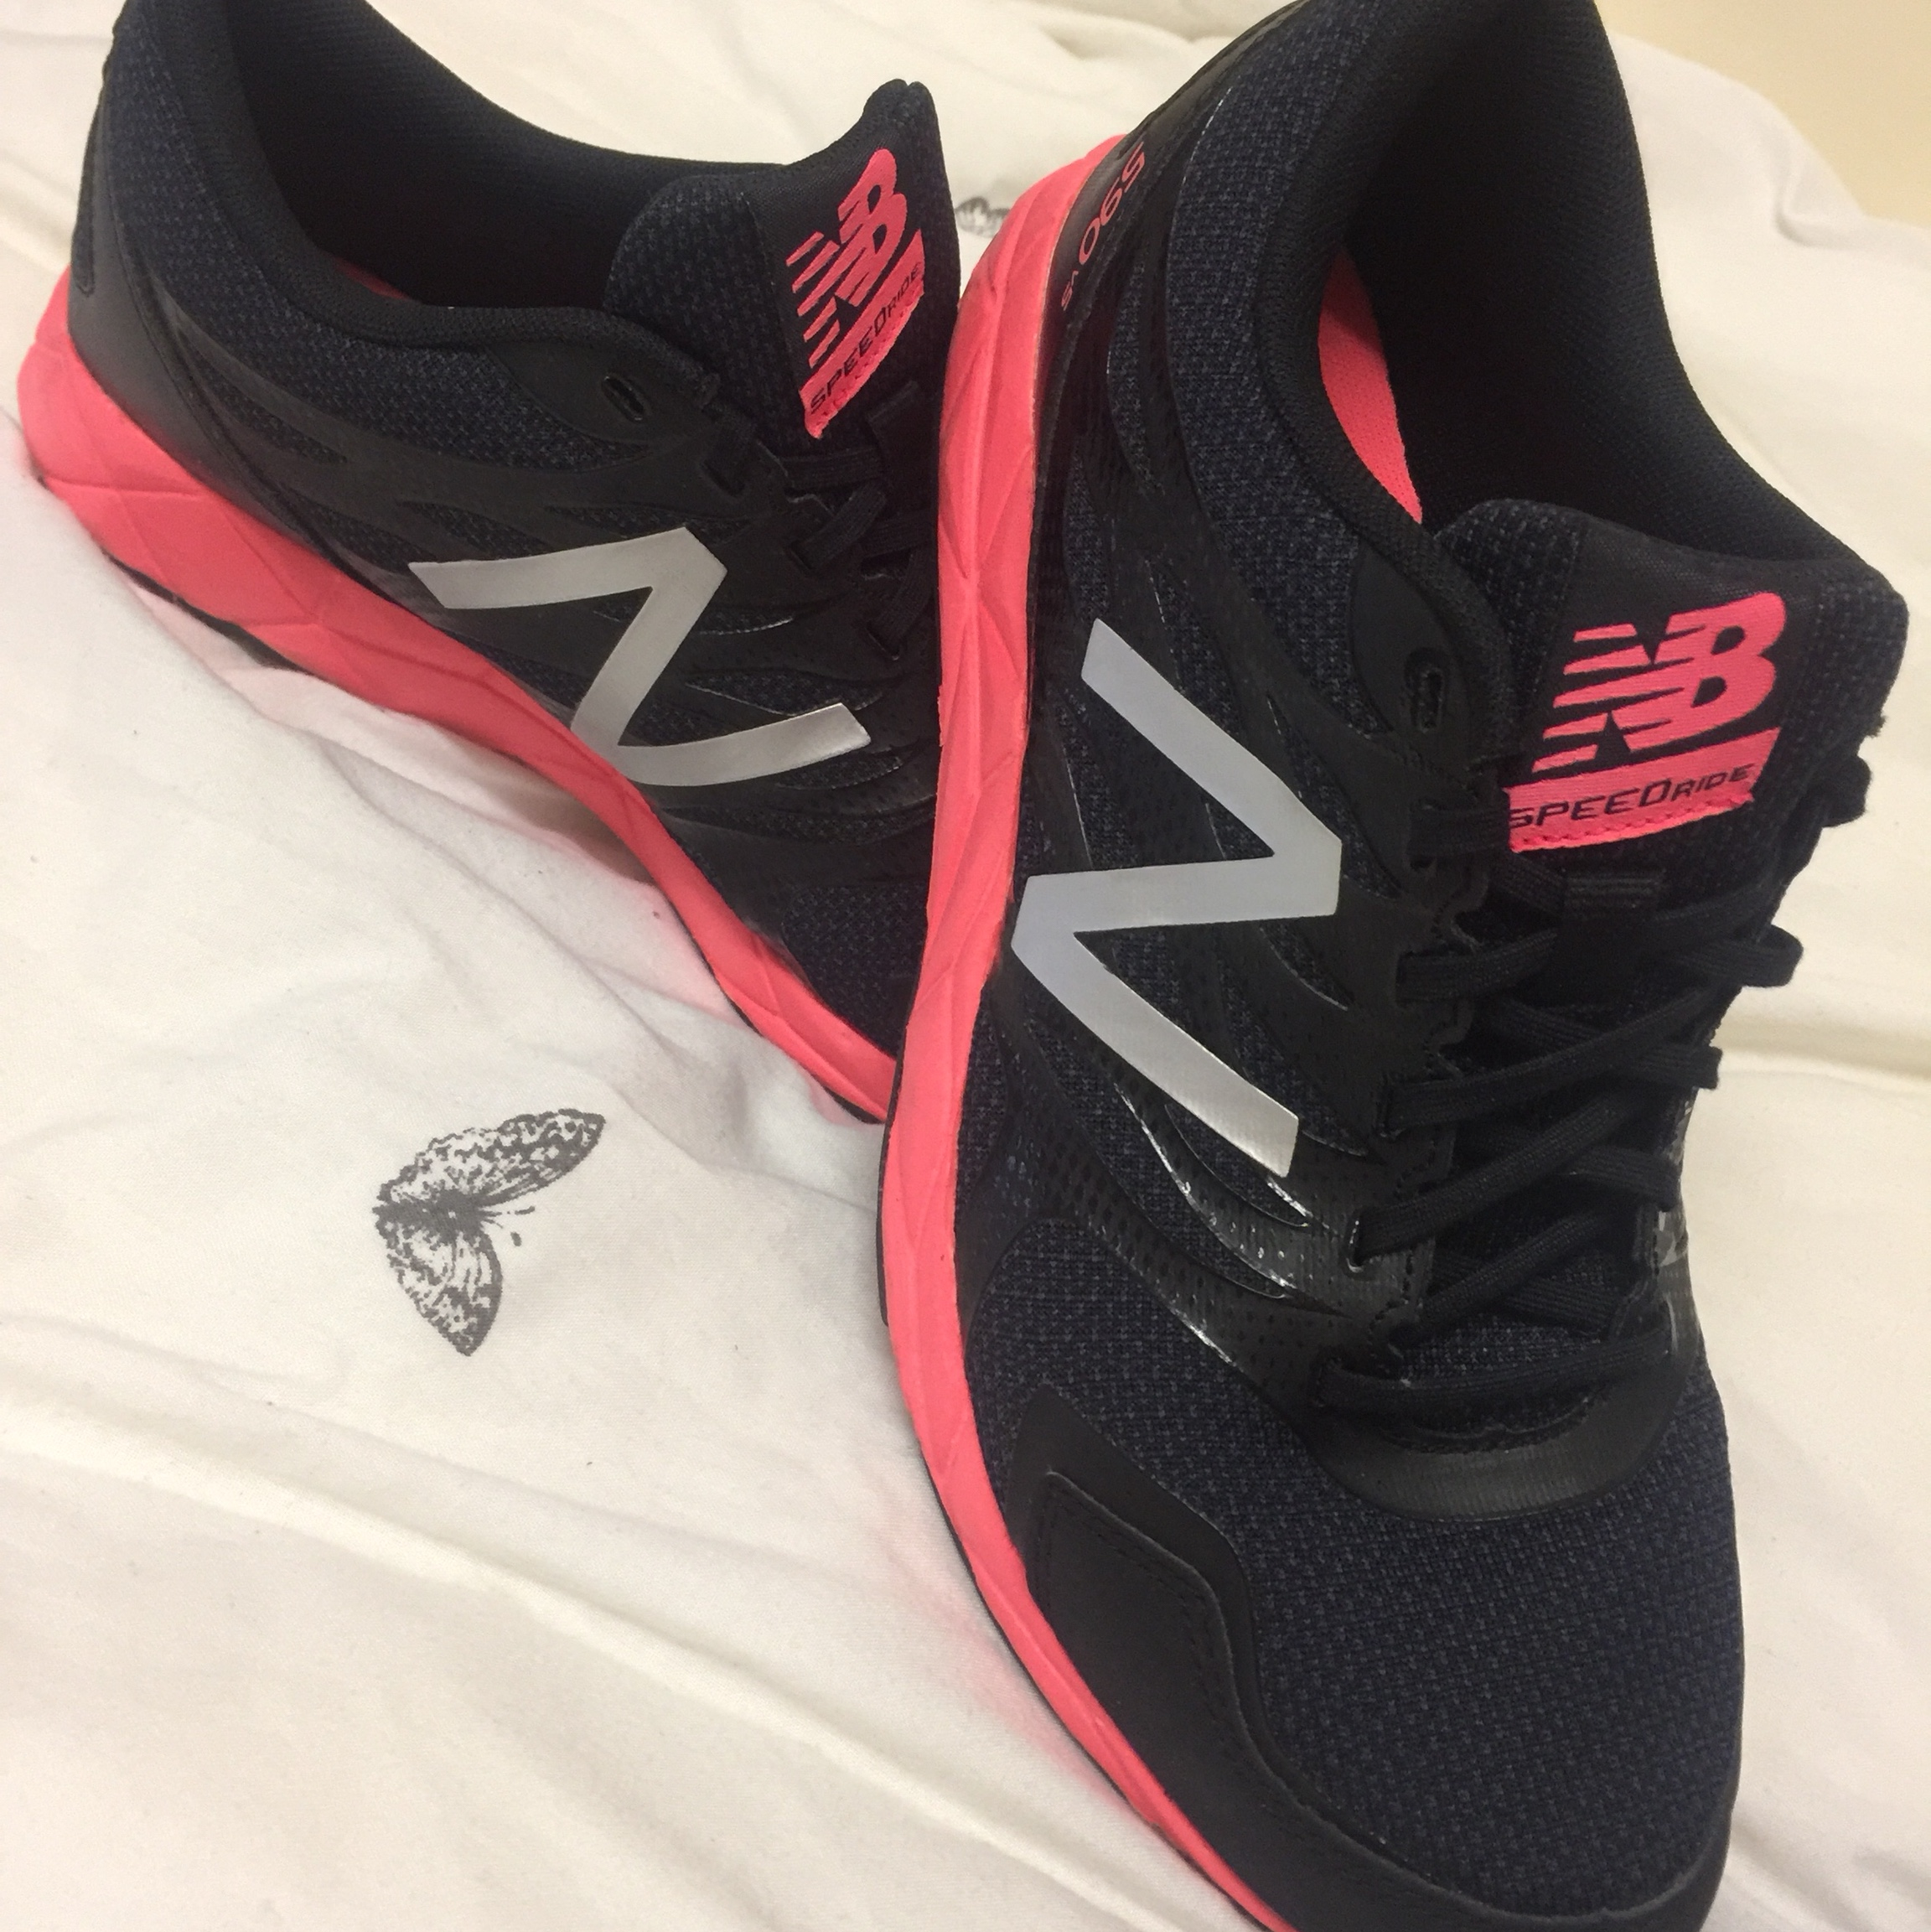 New Balance 590 v5 Running Trainers Size 6.5 One... - Depop